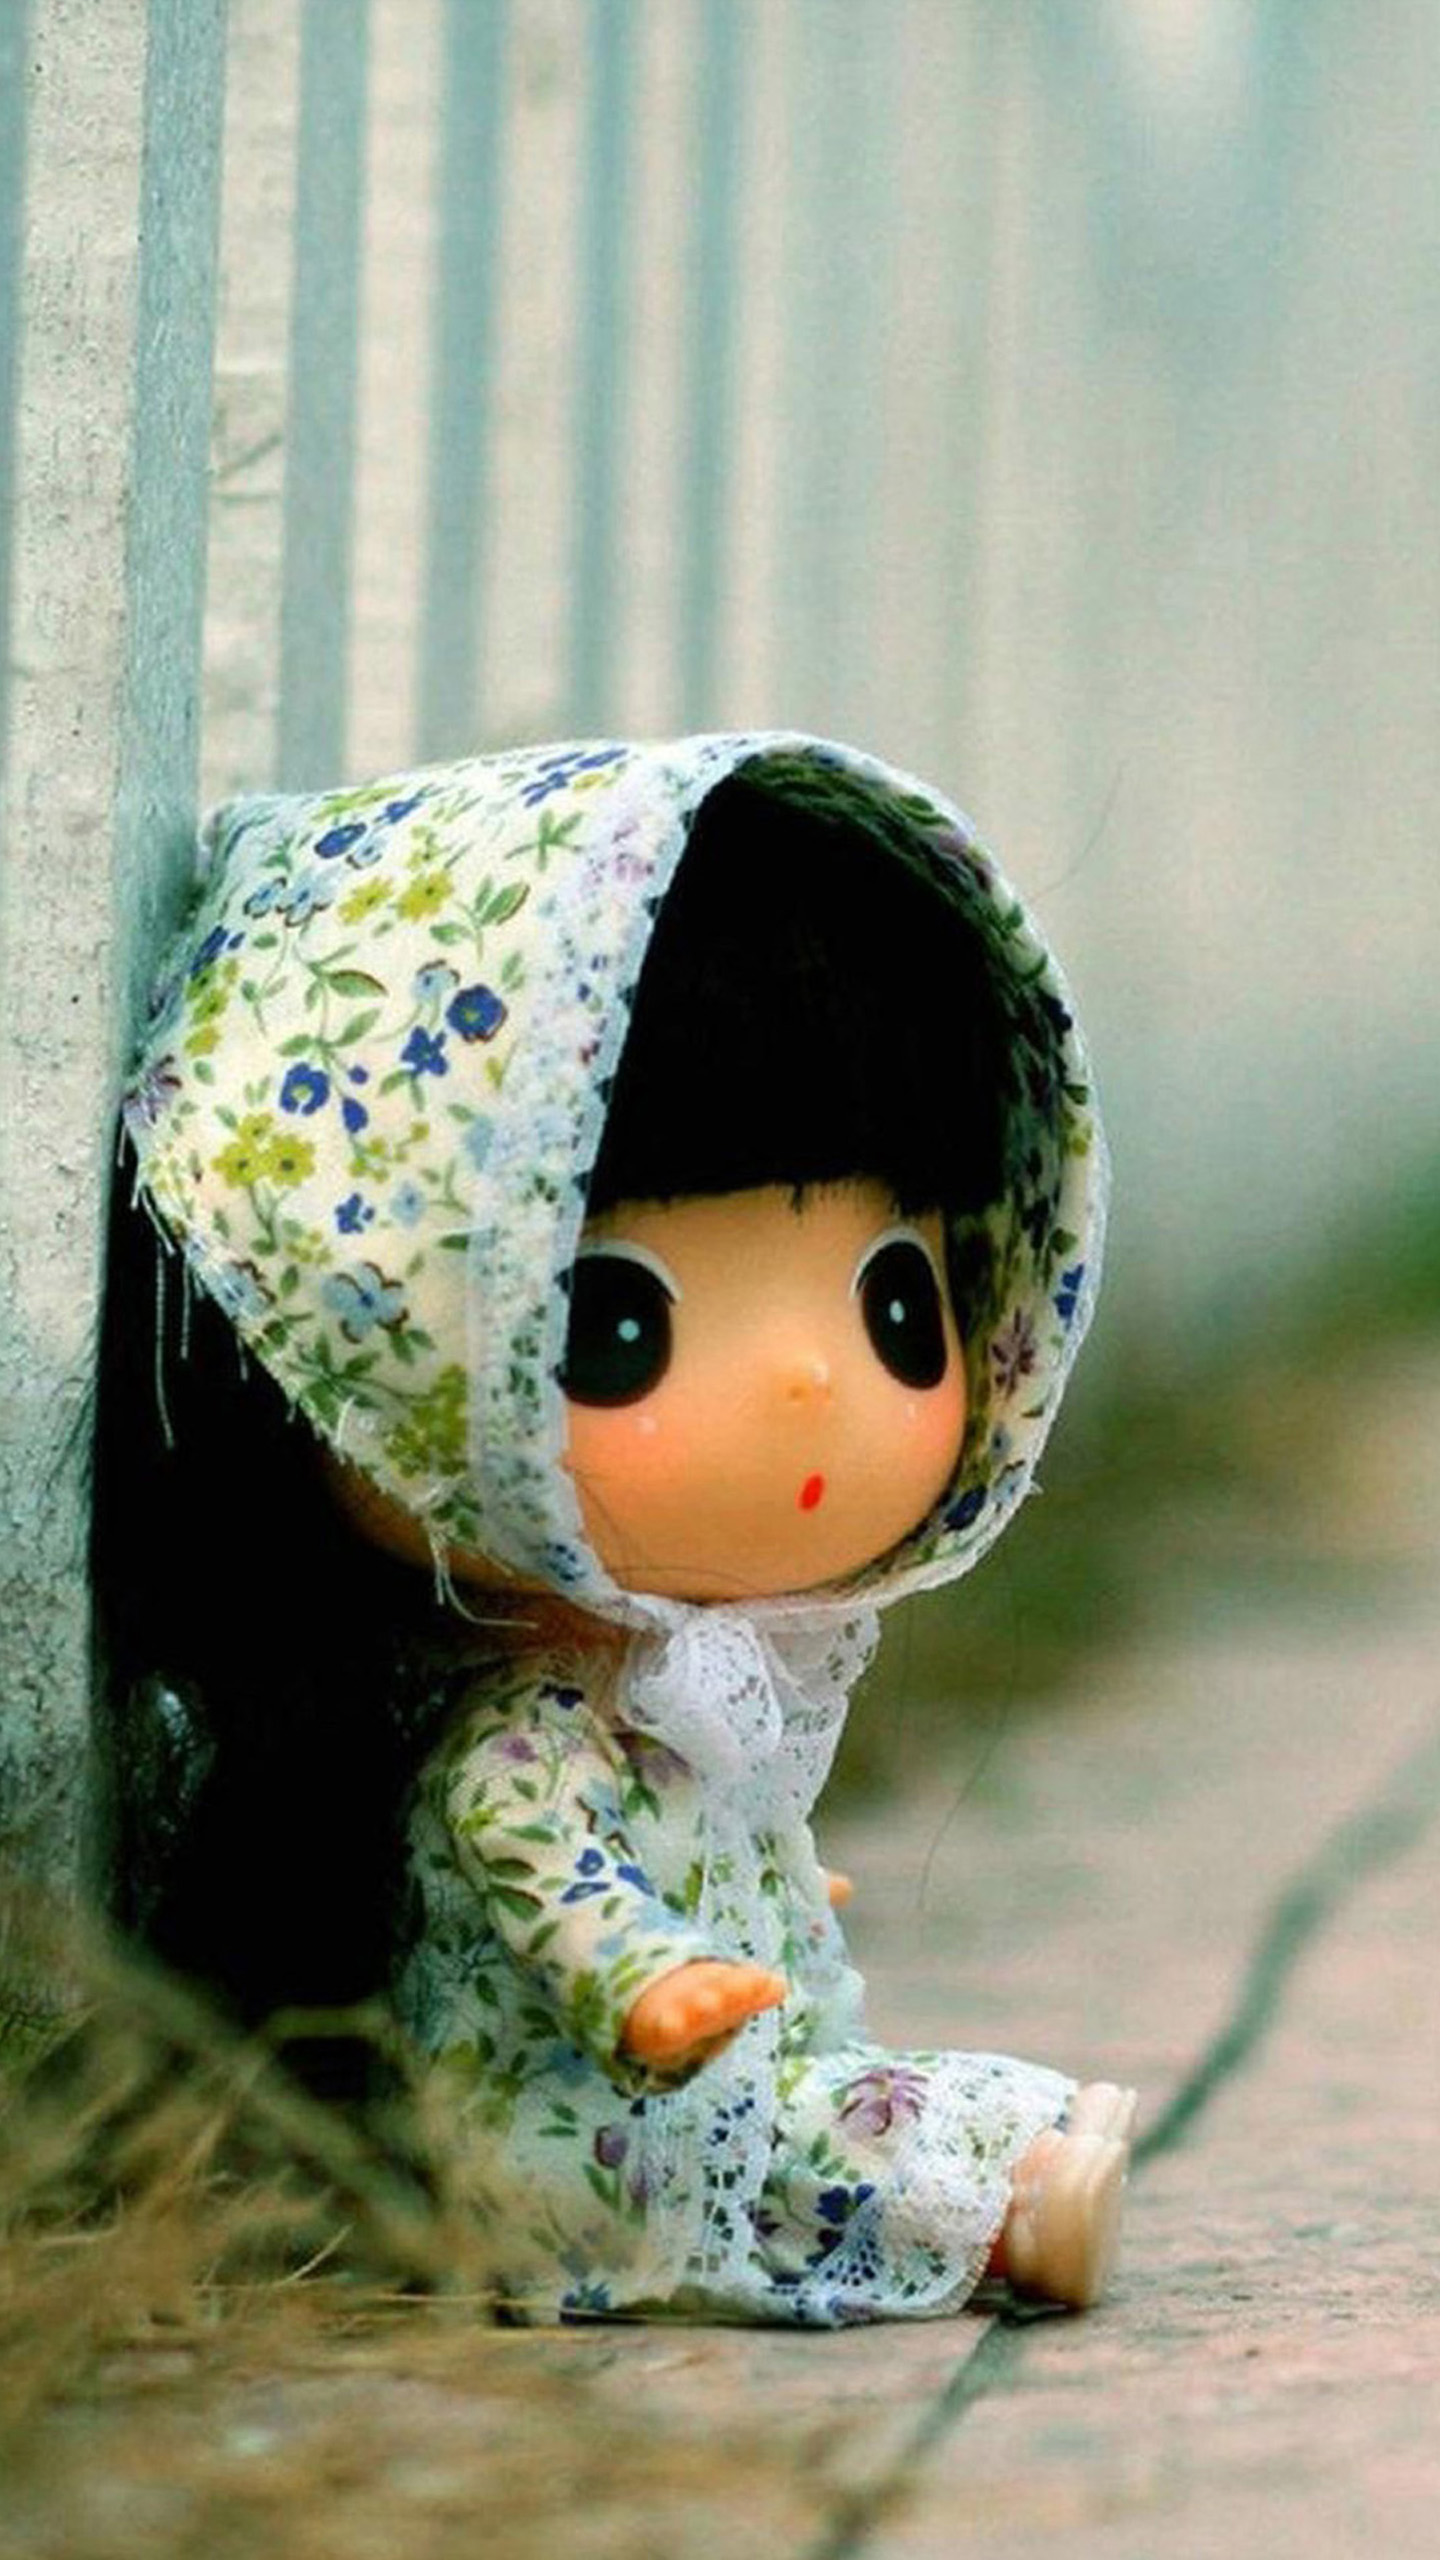 Cute Baby Live Wallpaper Download Cute Animated Dolls Wallpapers Gallery